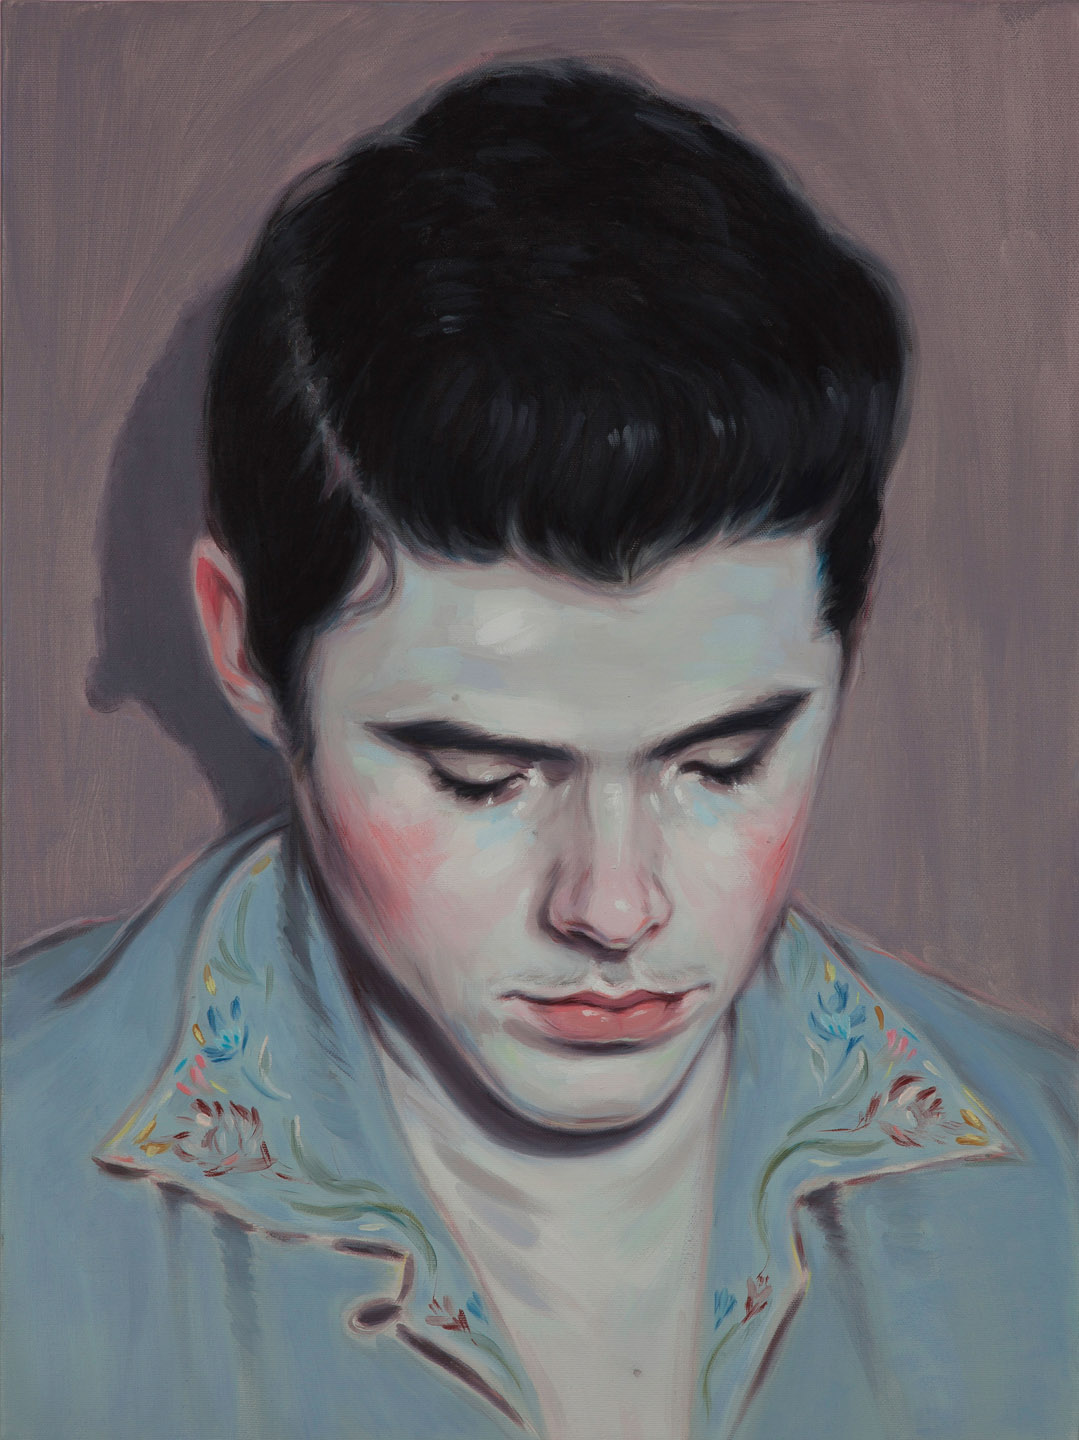 Kris Knight, Offstage (Big Head), 2015, oil on canvas, 24 x 18 inches .